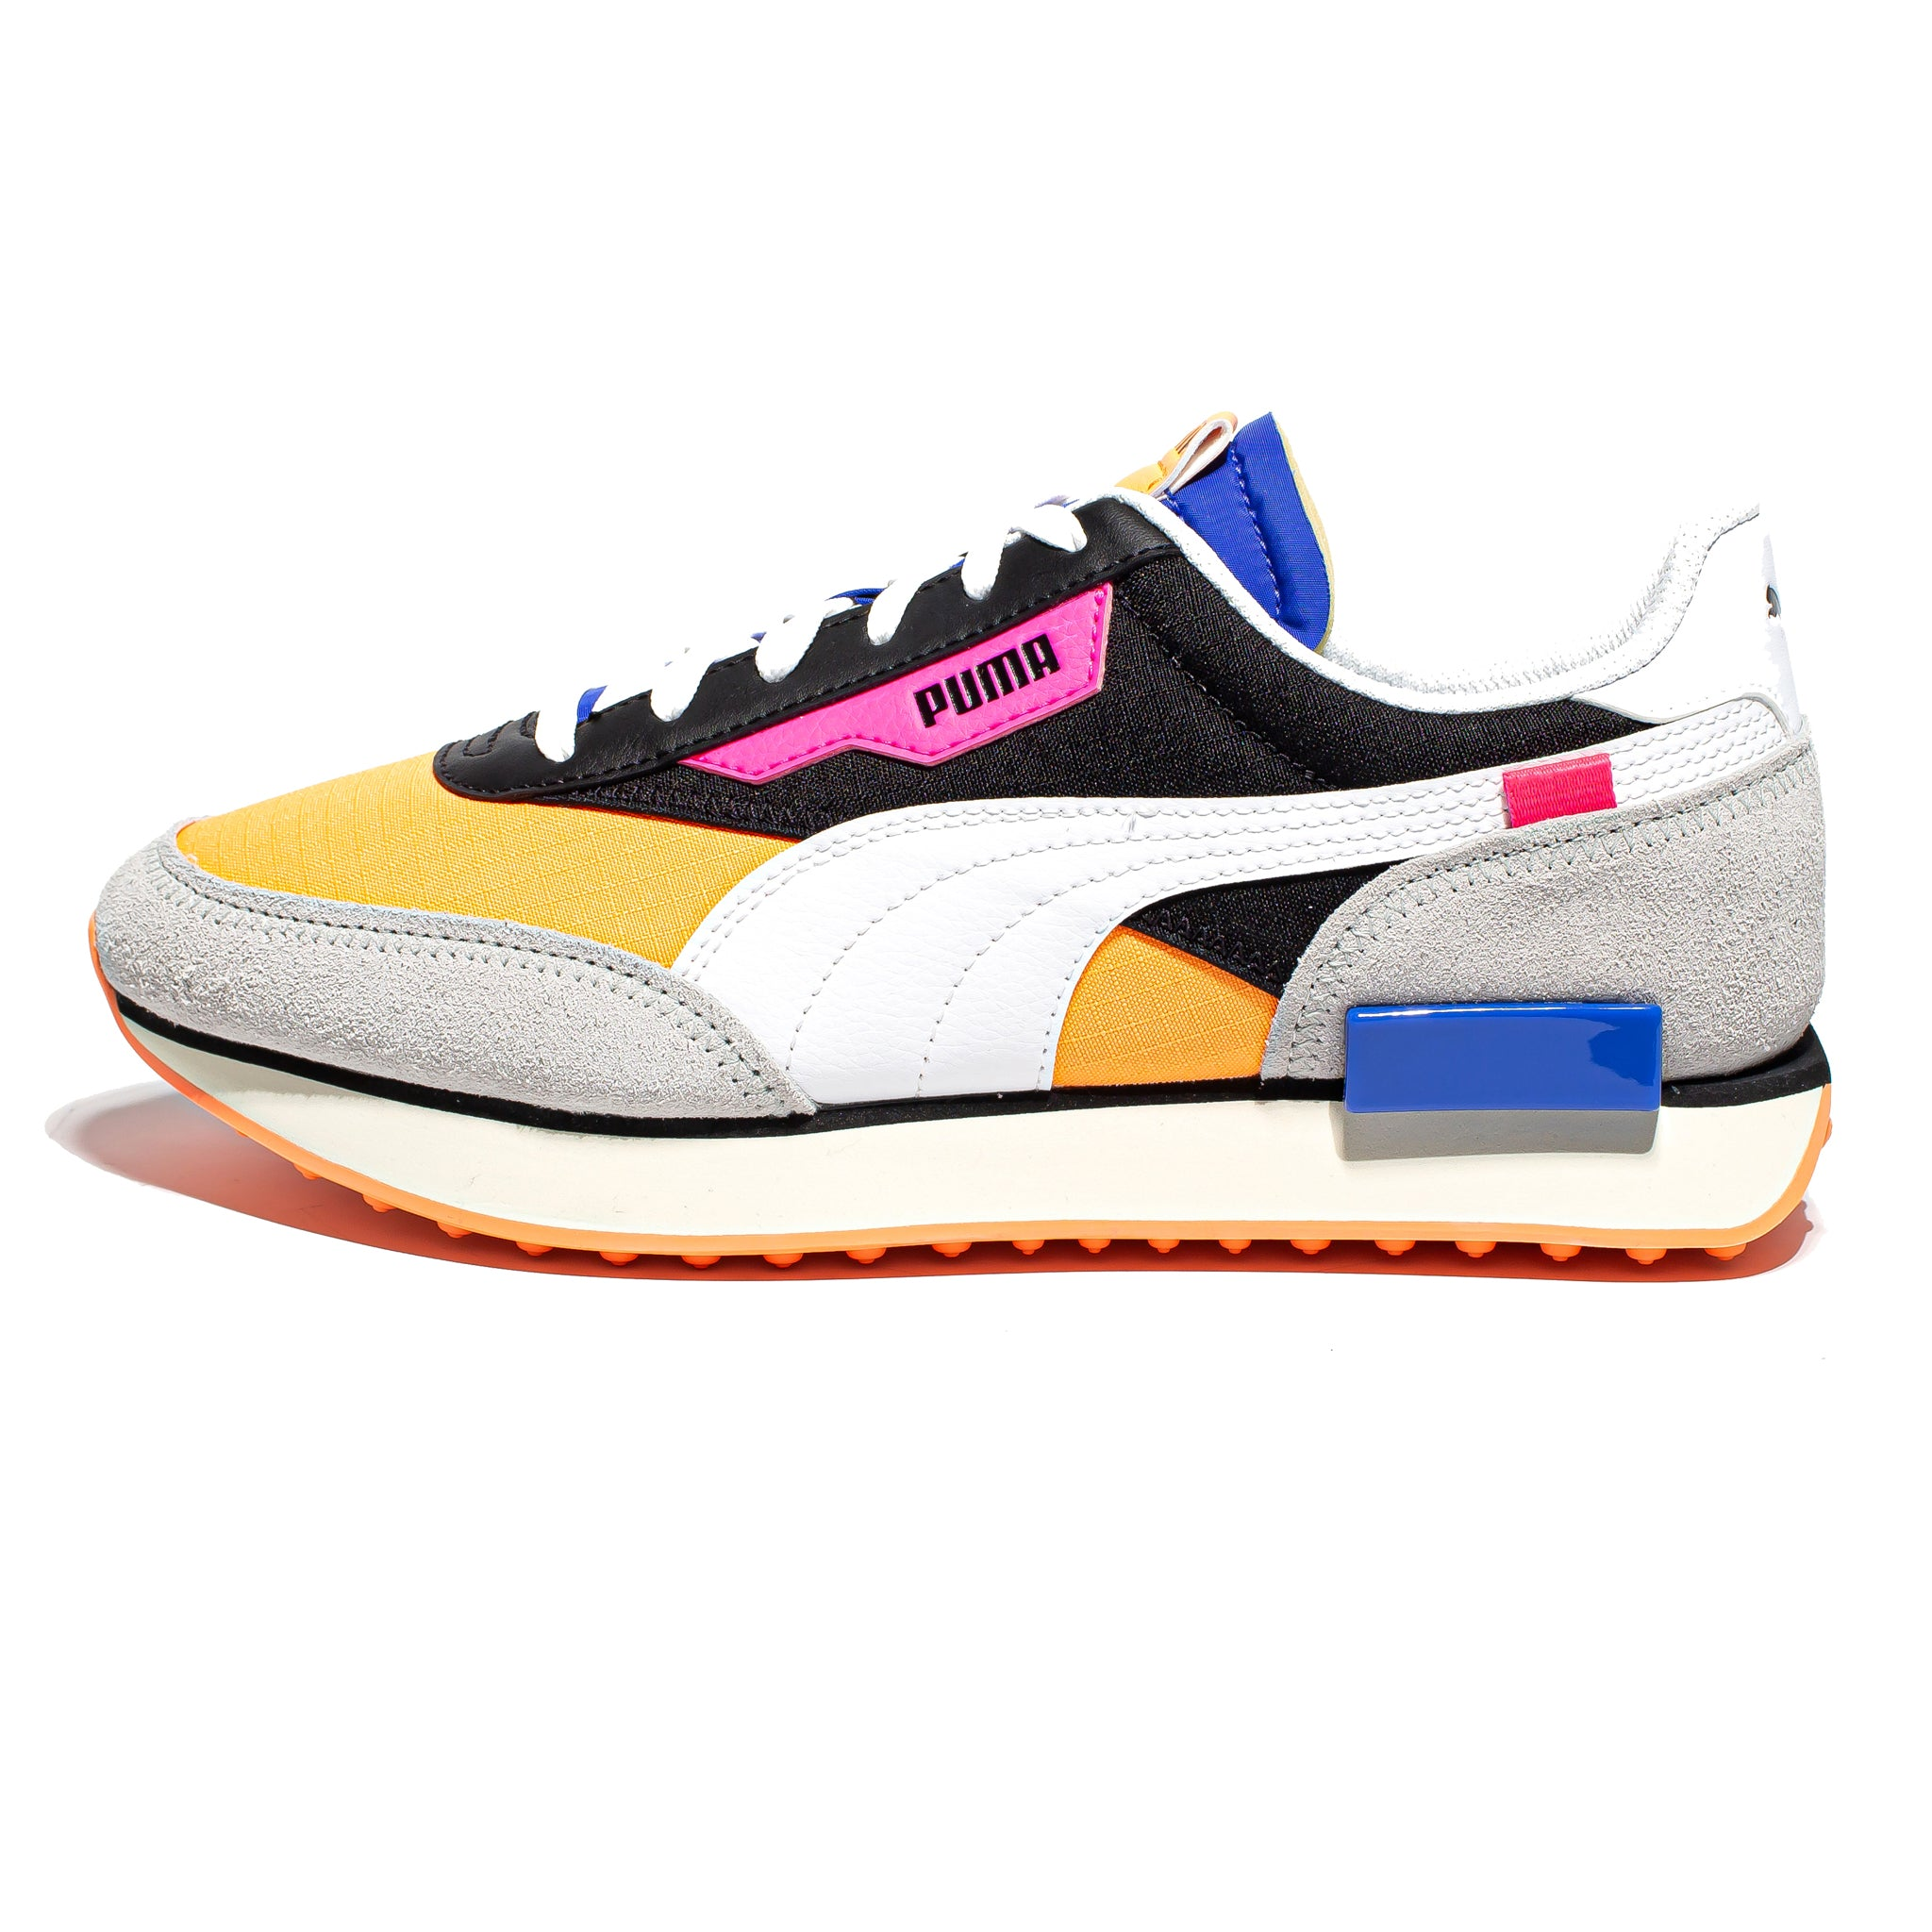 Puma Future Rider 'Play On' Black/Fizzy Orange